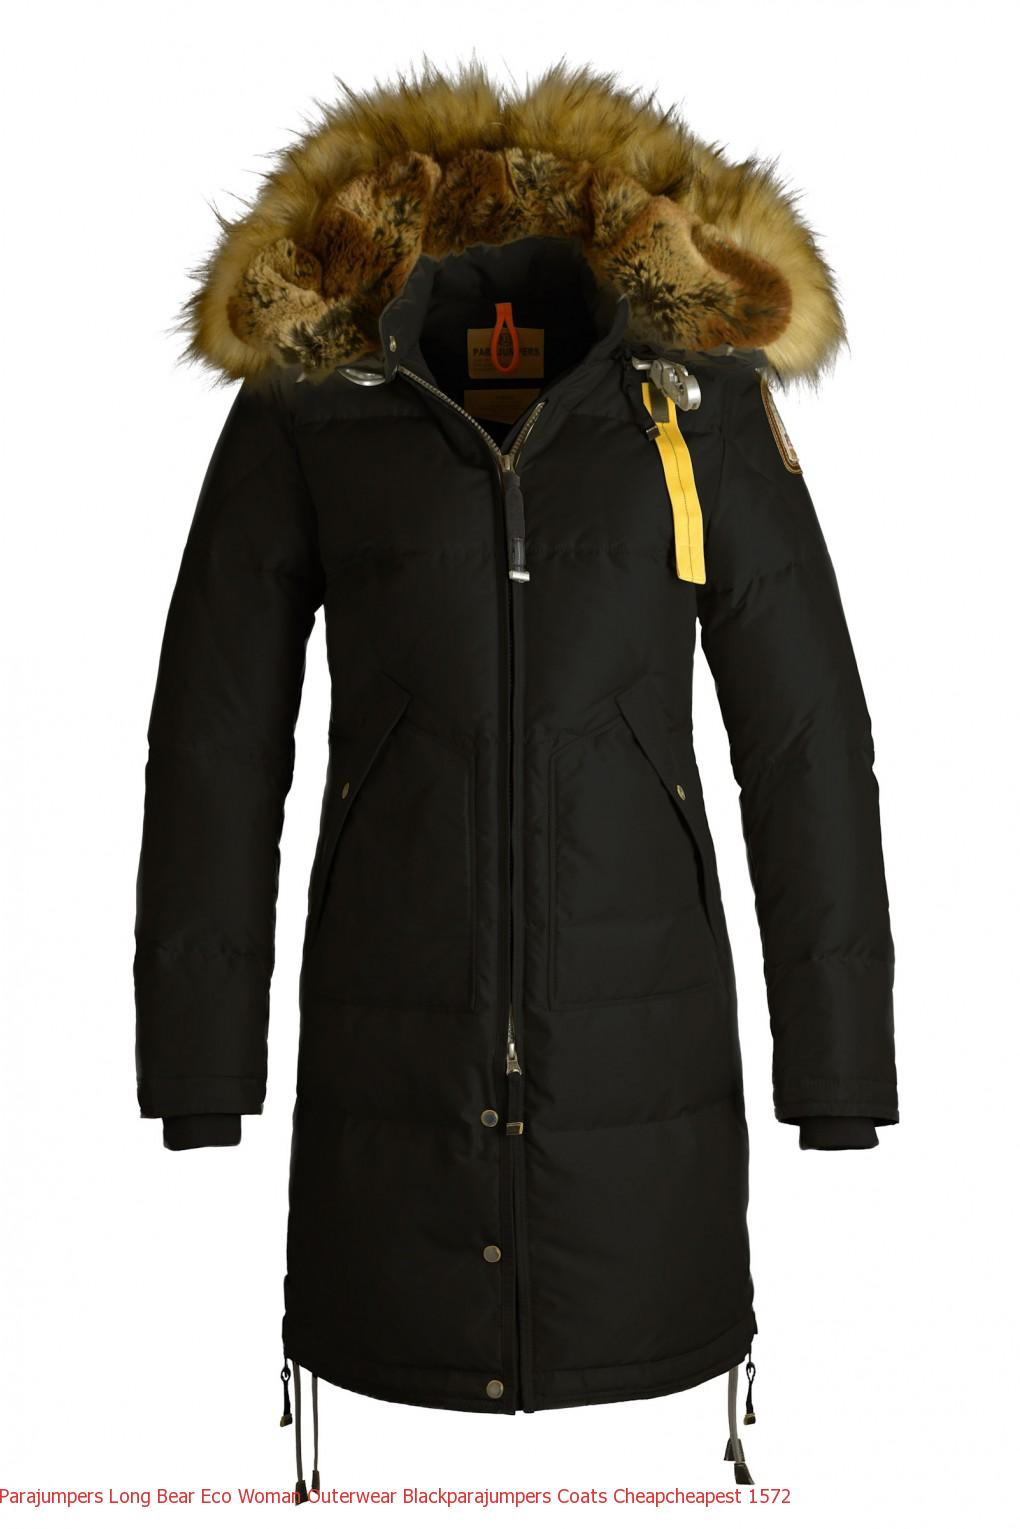 Is A Canada Goose Jacket Waterproof Parajumpers LONG BEAR ECO Woman Outerwear Black